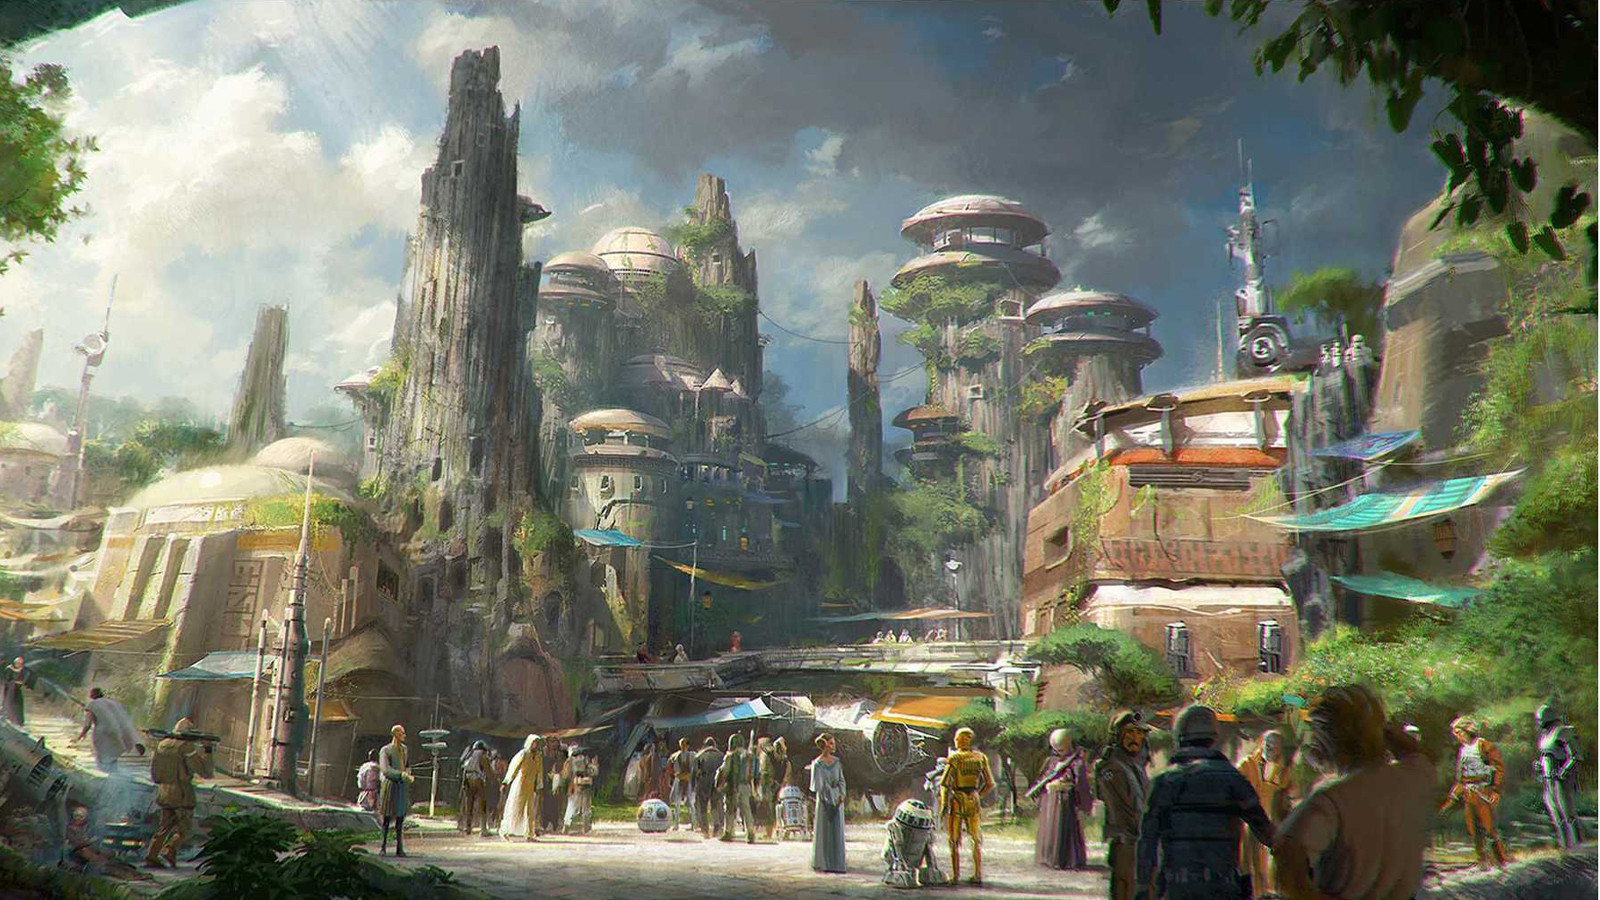 Star Wars Disneyland Ride Disneyland Unveils 'star Wars'